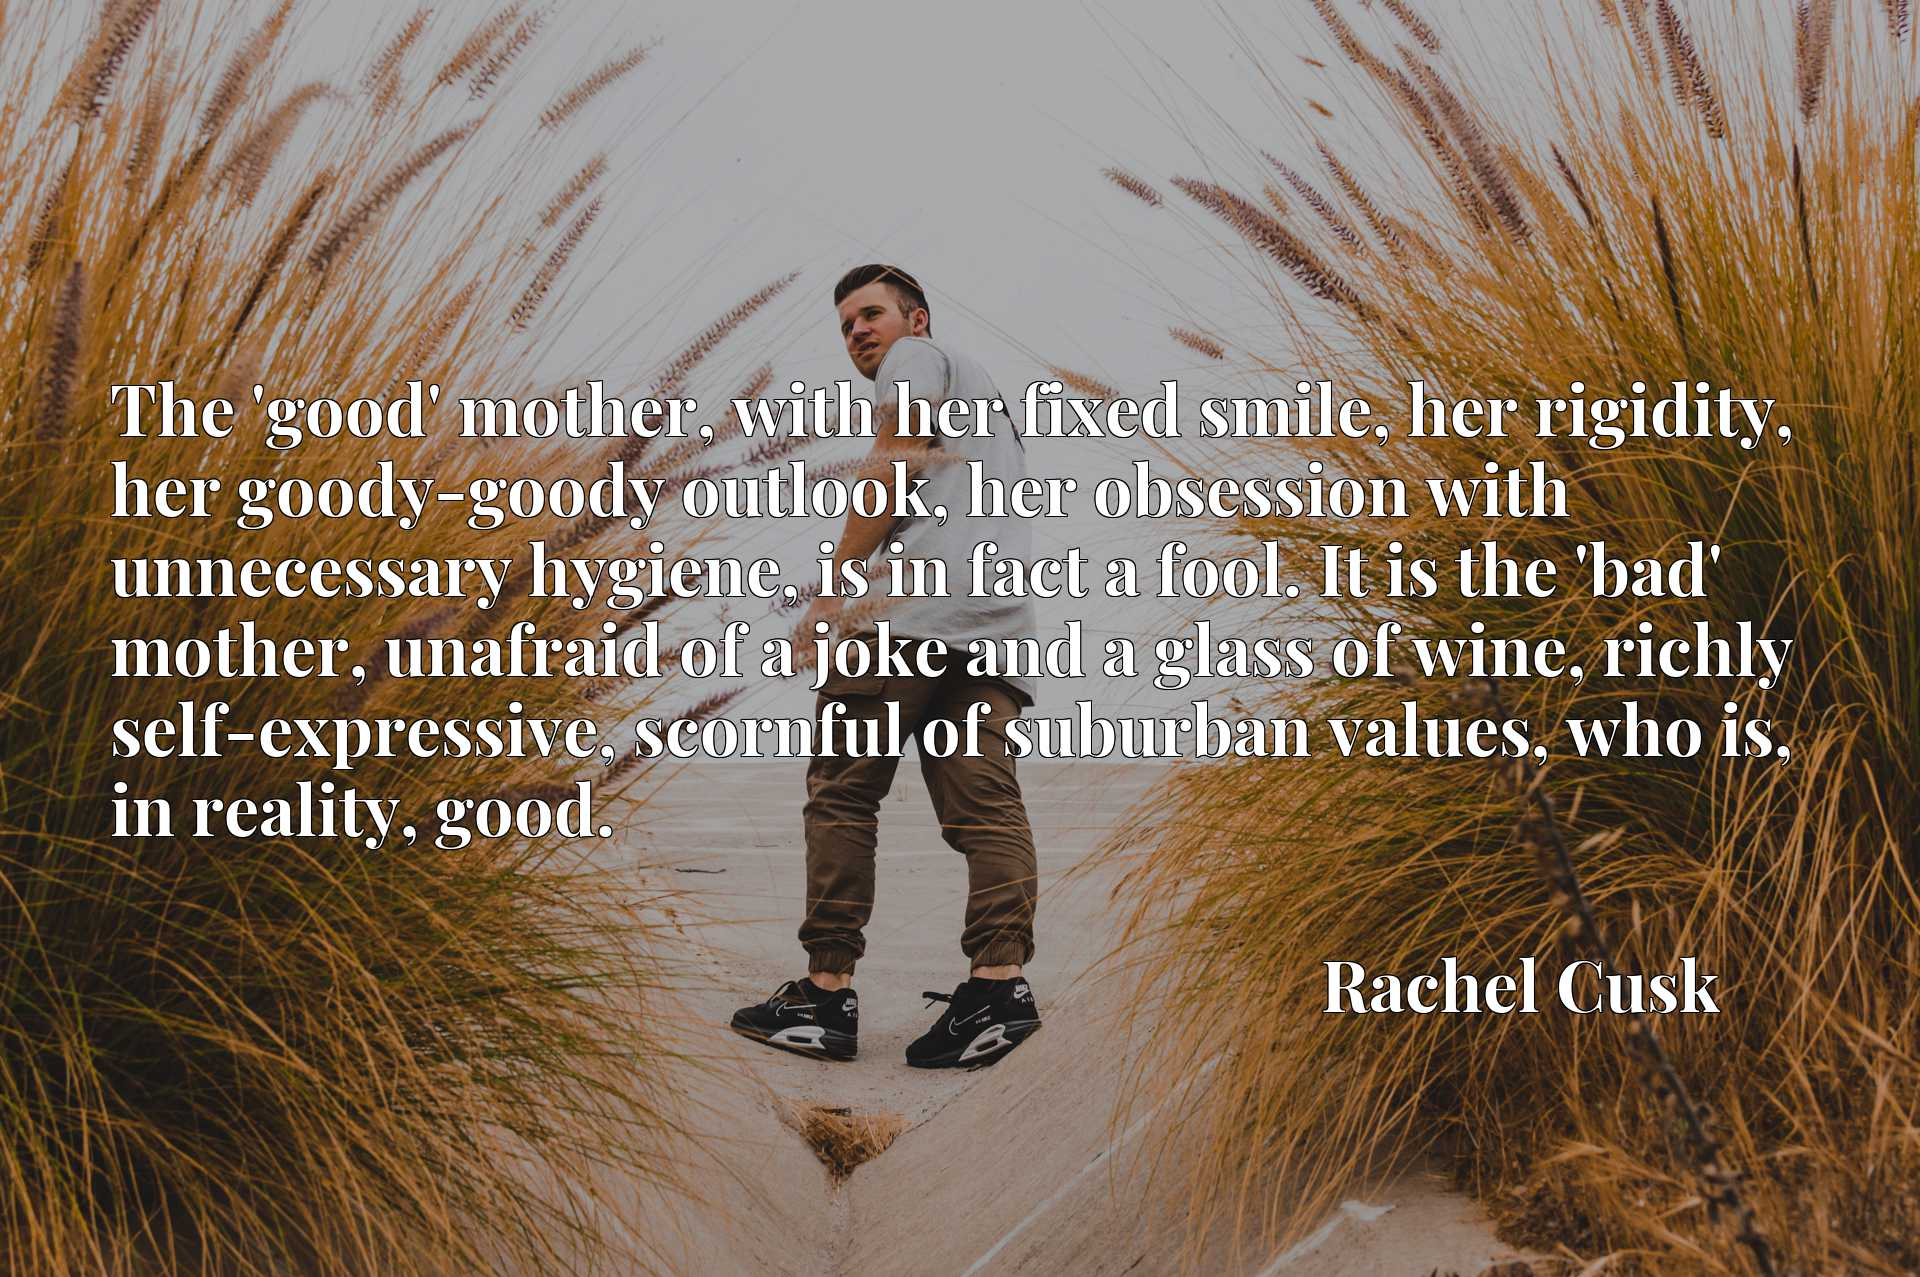 The 'good' mother, with her fixed smile, her rigidity, her goody-goody outlook, her obsession with unnecessary hygiene, is in fact a fool. It is the 'bad' mother, unafraid of a joke and a glass of wine, richly self-expressive, scornful of suburban values, who is, in reality, good.